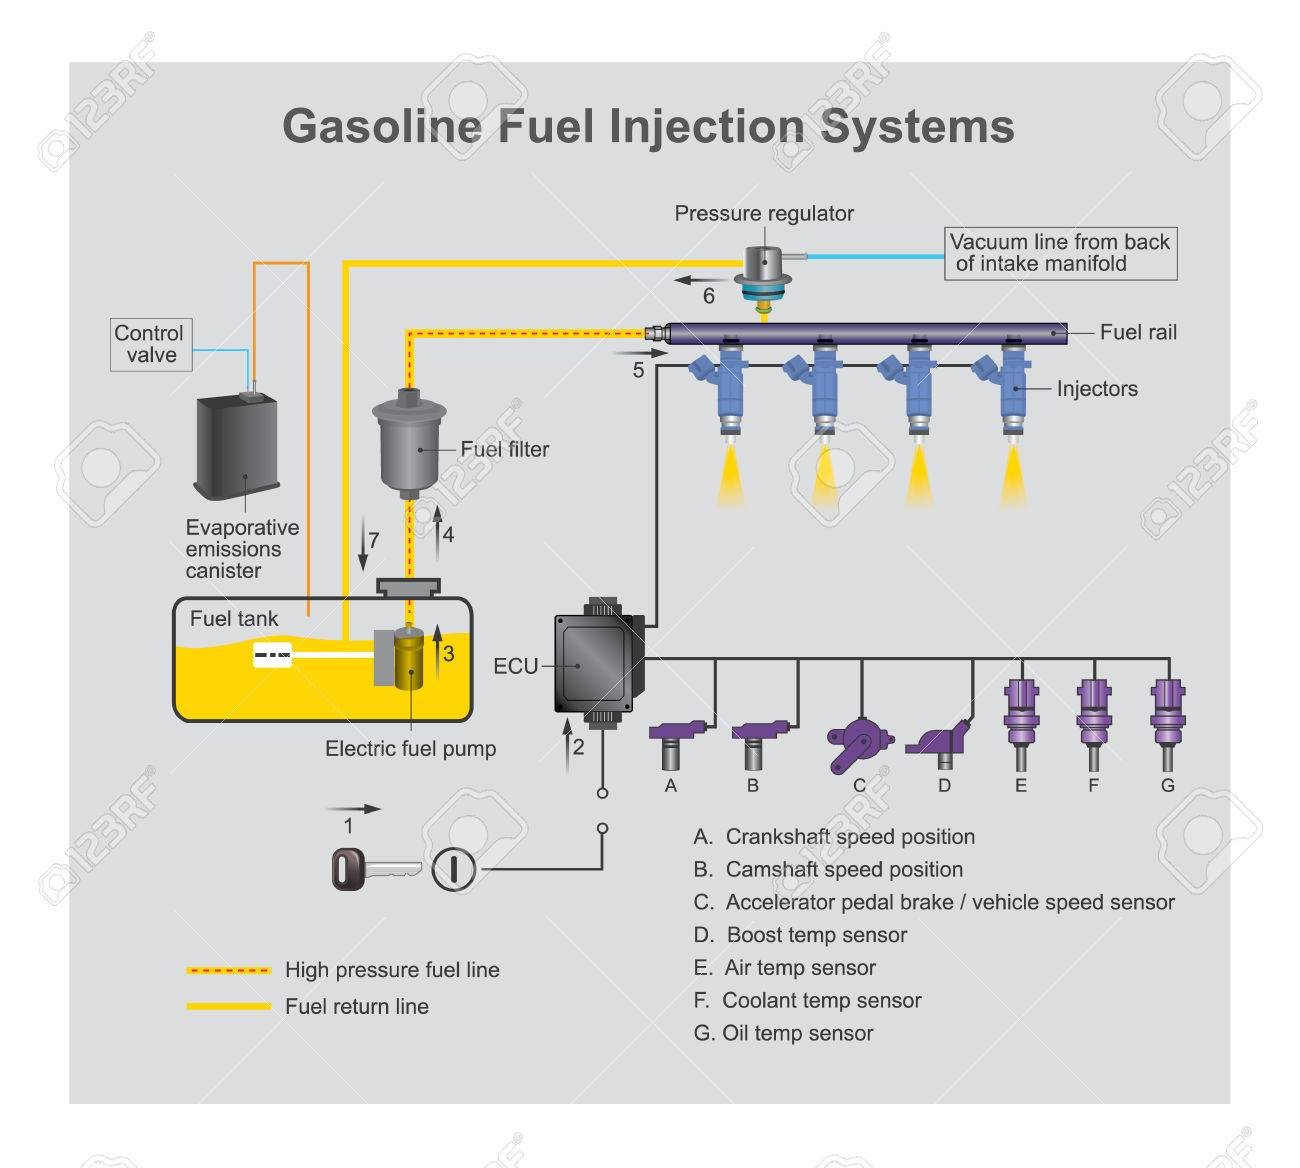 gasoline fuel injection system is the introduction of fuel in an internal  combustion engine, most